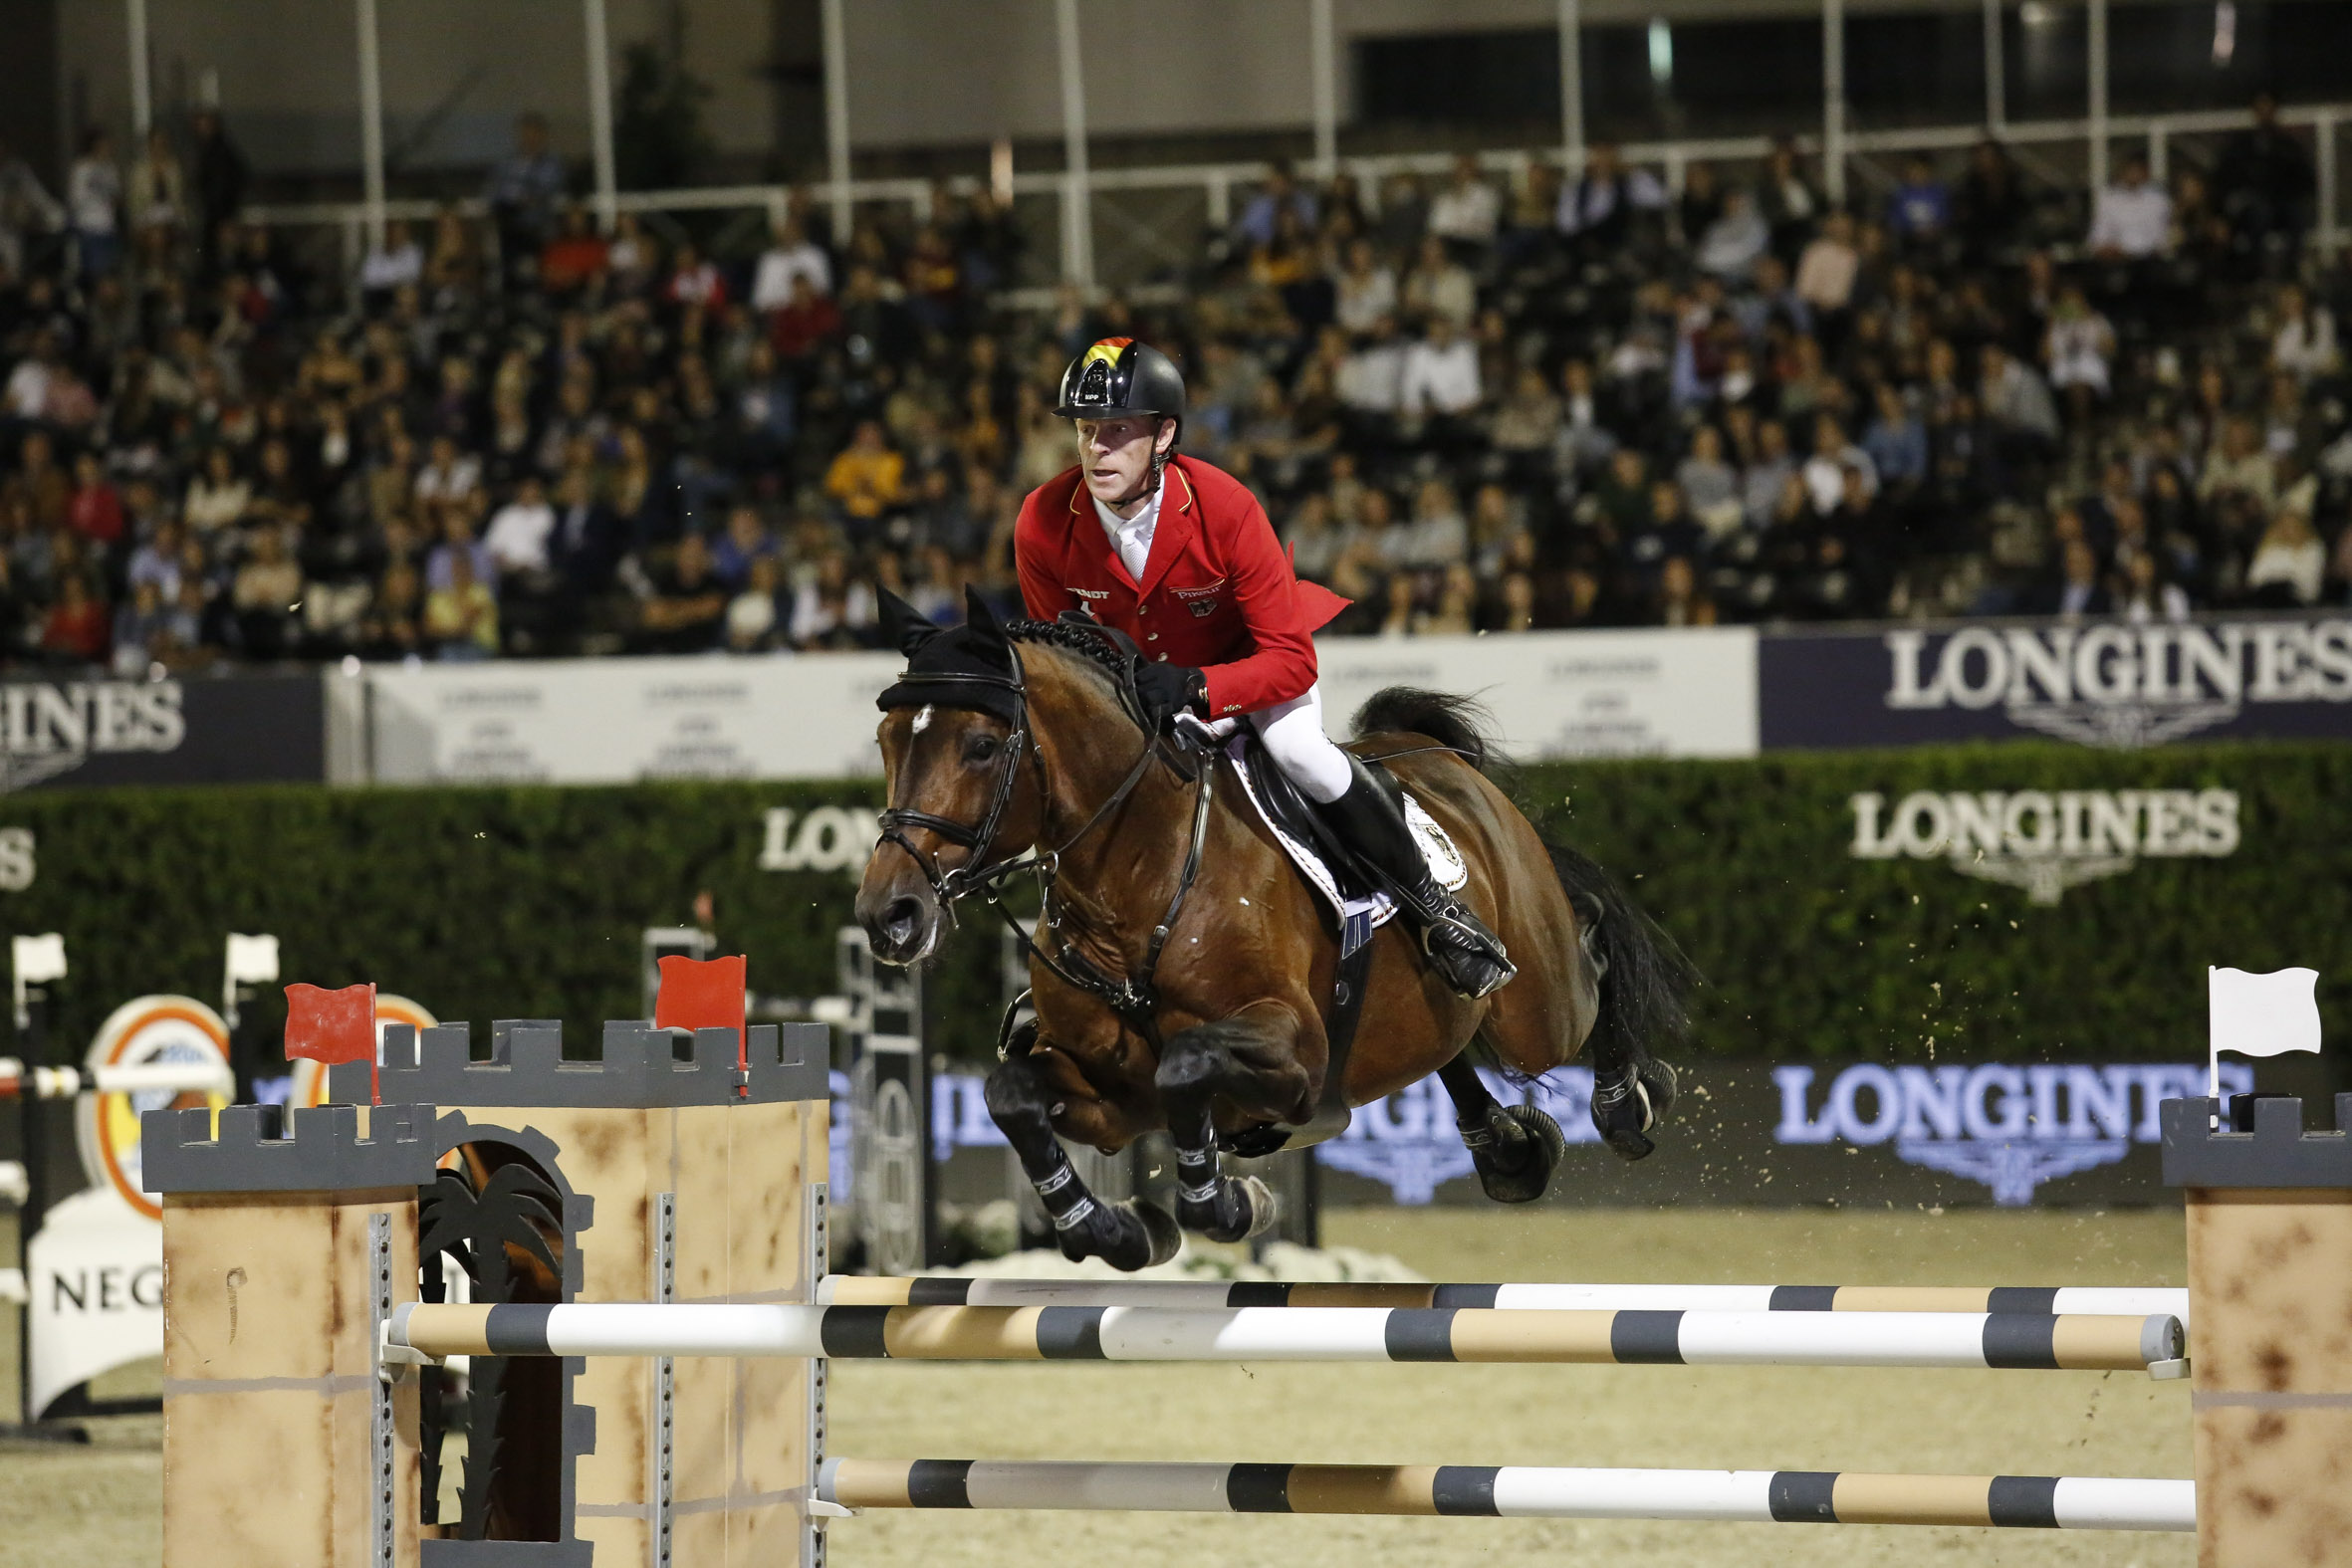 The Longines FEI Jumping Nations Cup™ Final stays in Barcelona!